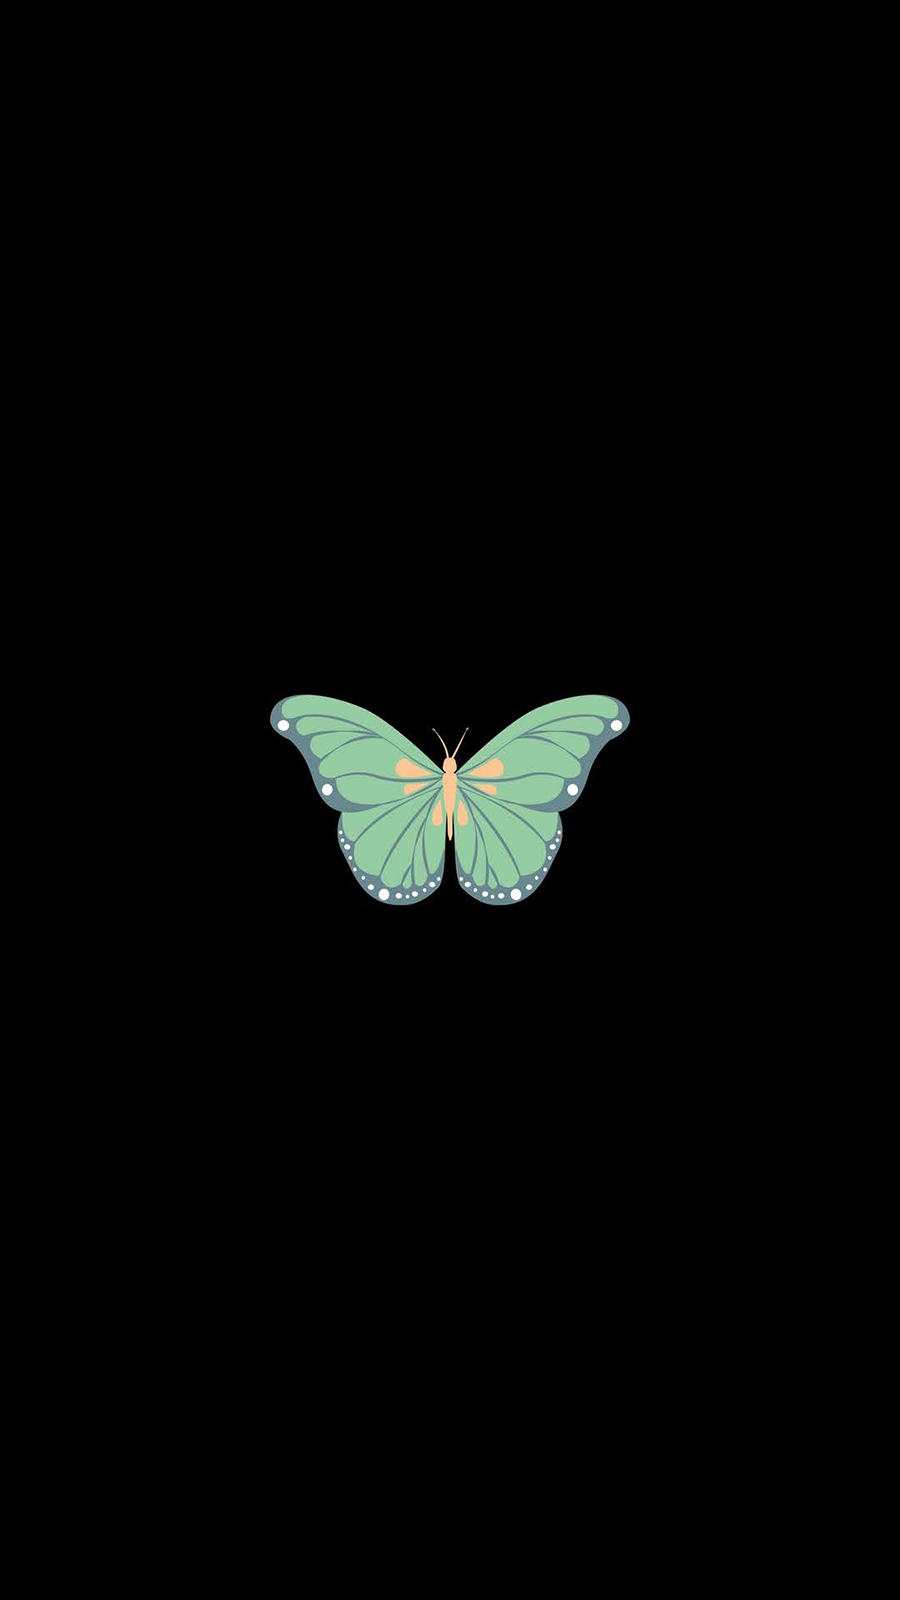 Butterfly icon Wallpapers Free Download